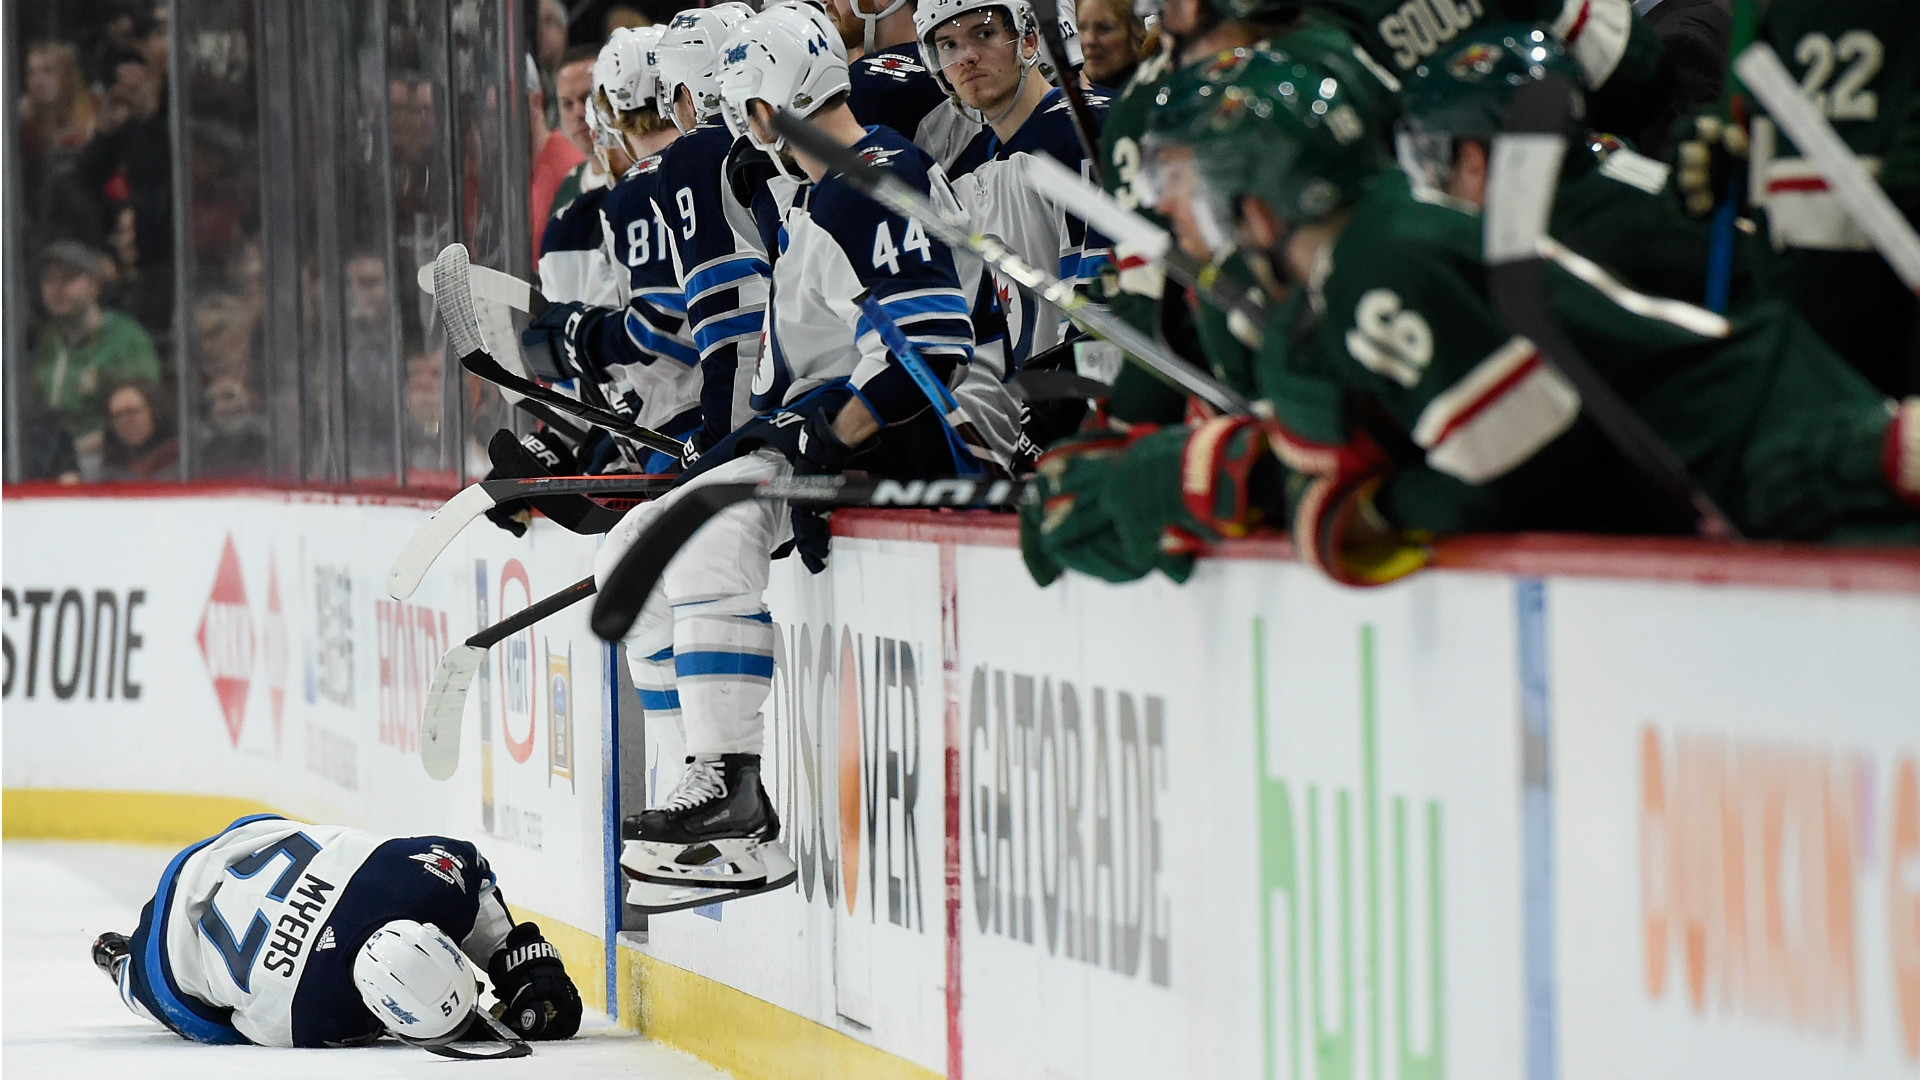 Scheifele leads Jets to important playoff win over Wild